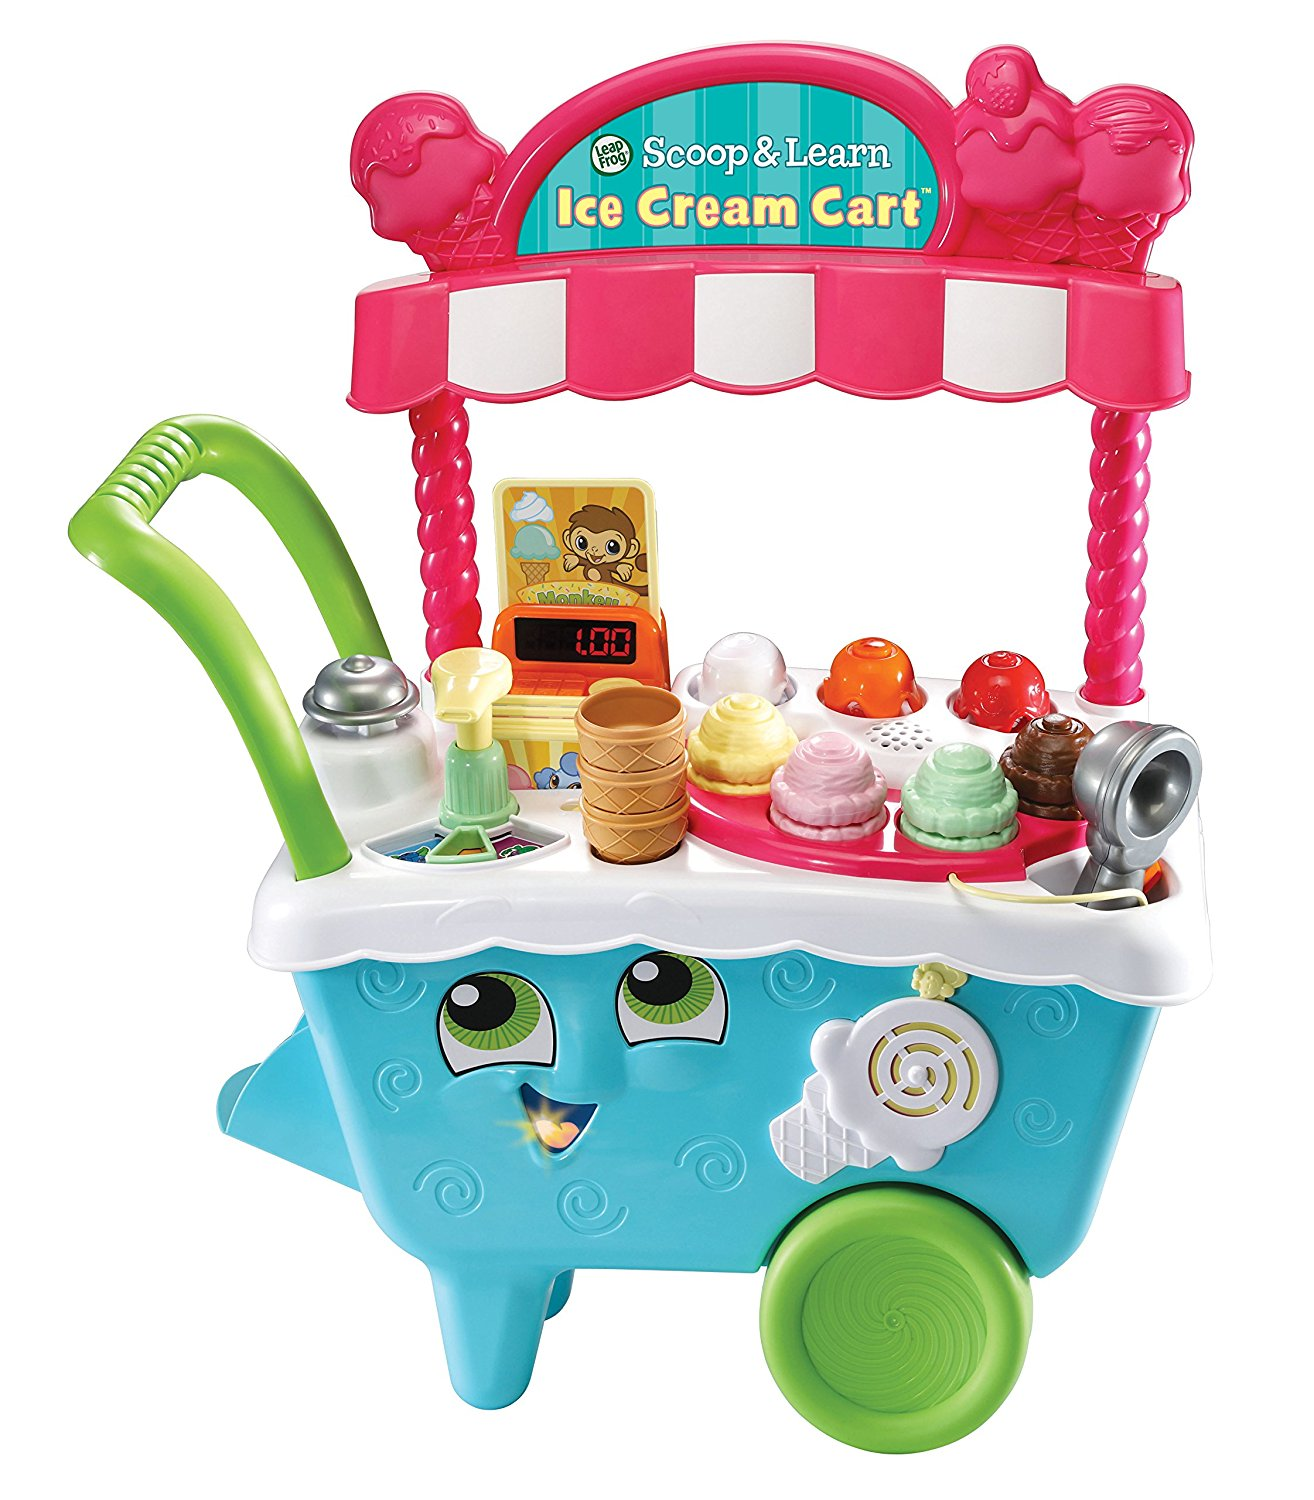 leapfrog scoop learn ice cream cart best educational infant toys